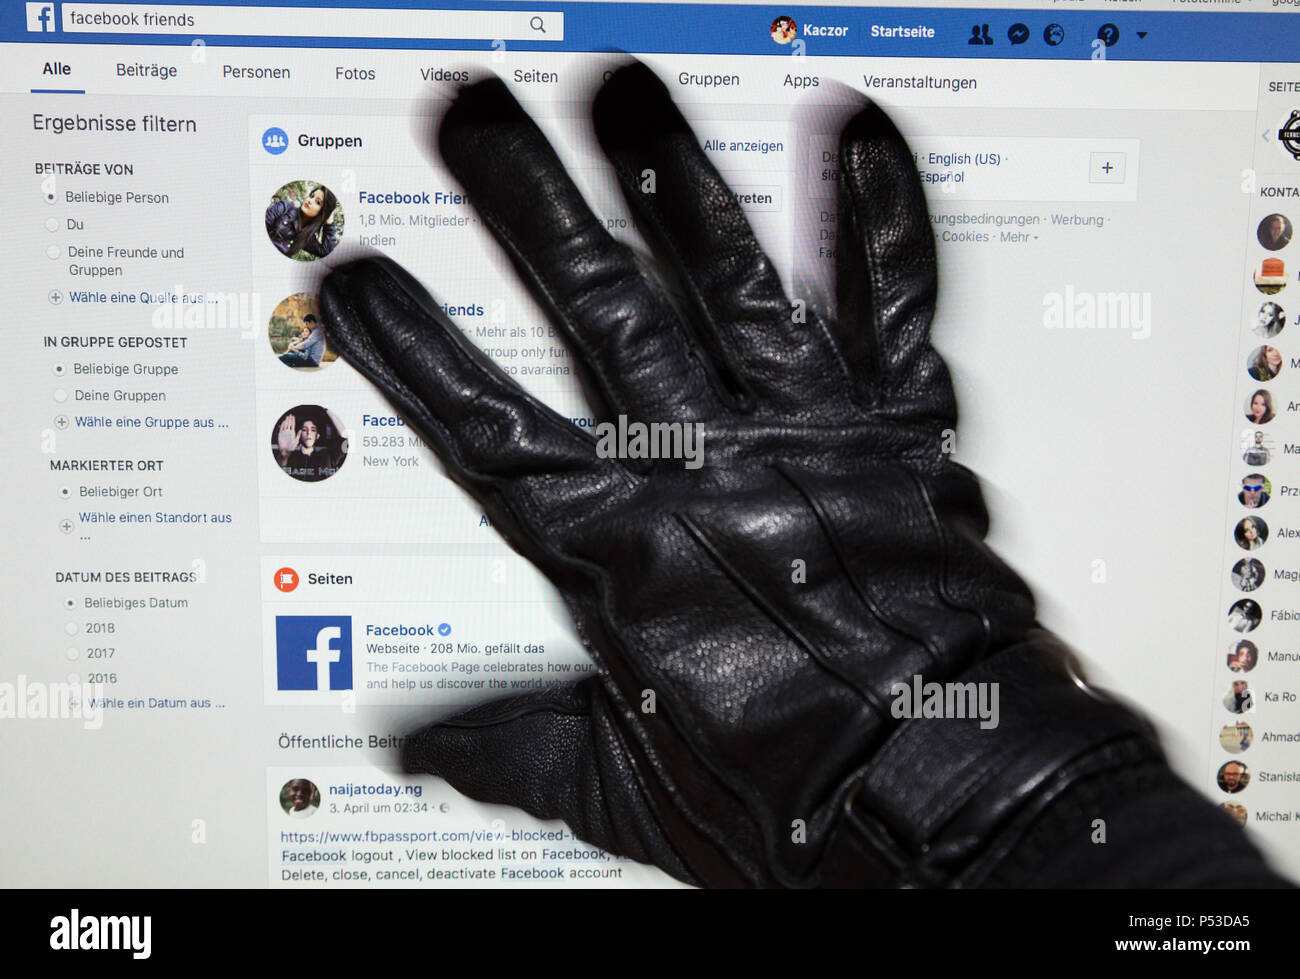 Symbolic picture on the topic of tha Facebook scandal with Cambridge Analytica - Stock Image